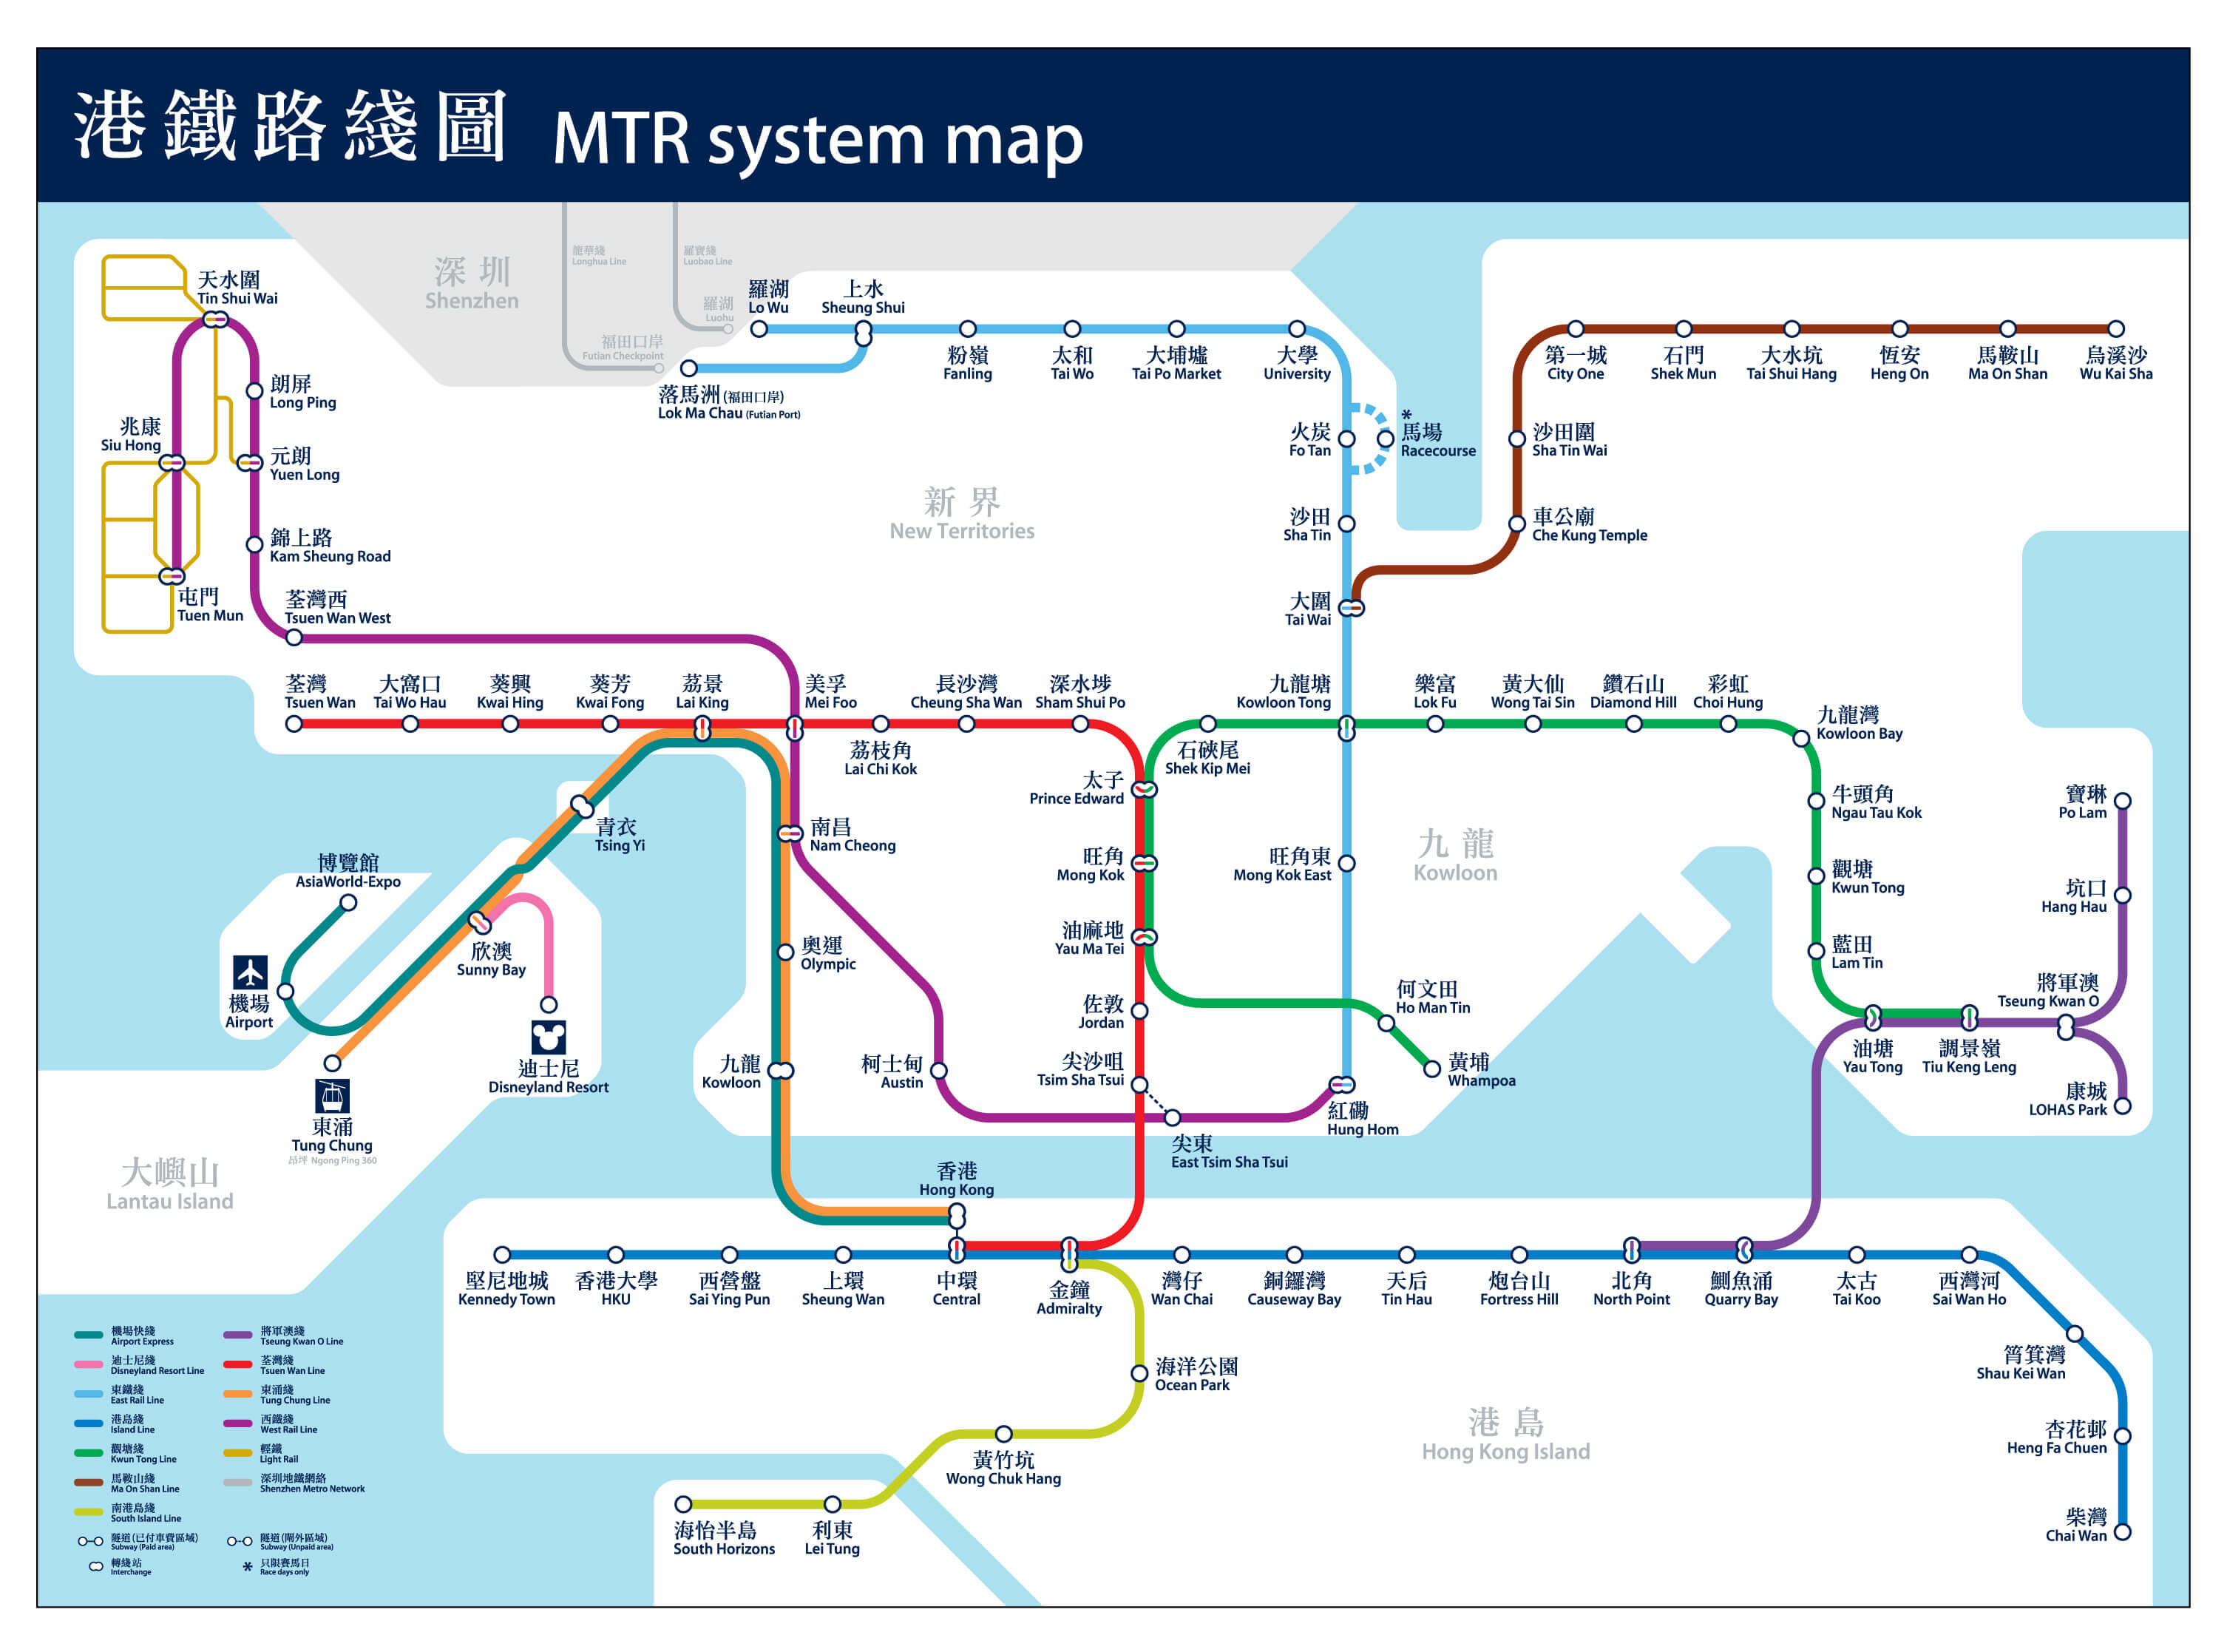 Hong Kong Map Hong Kong Tourist Map Hong Kong Macau Map - Hong kong map